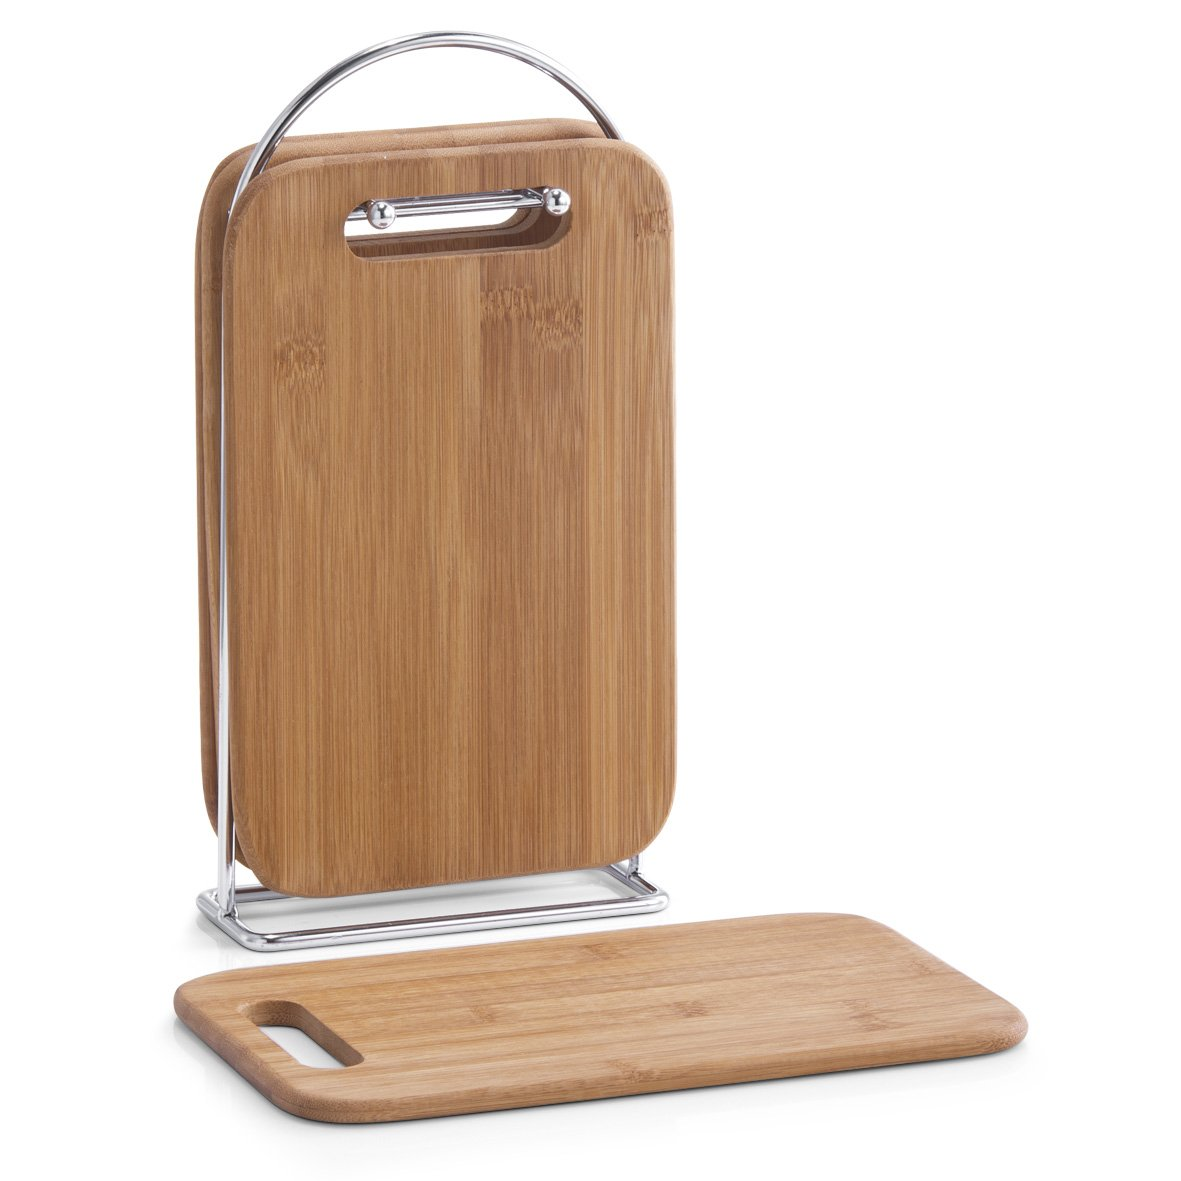 Zeller 25264 5-Piece Chopping Board Set Including Board Stand Bamboo Chrome